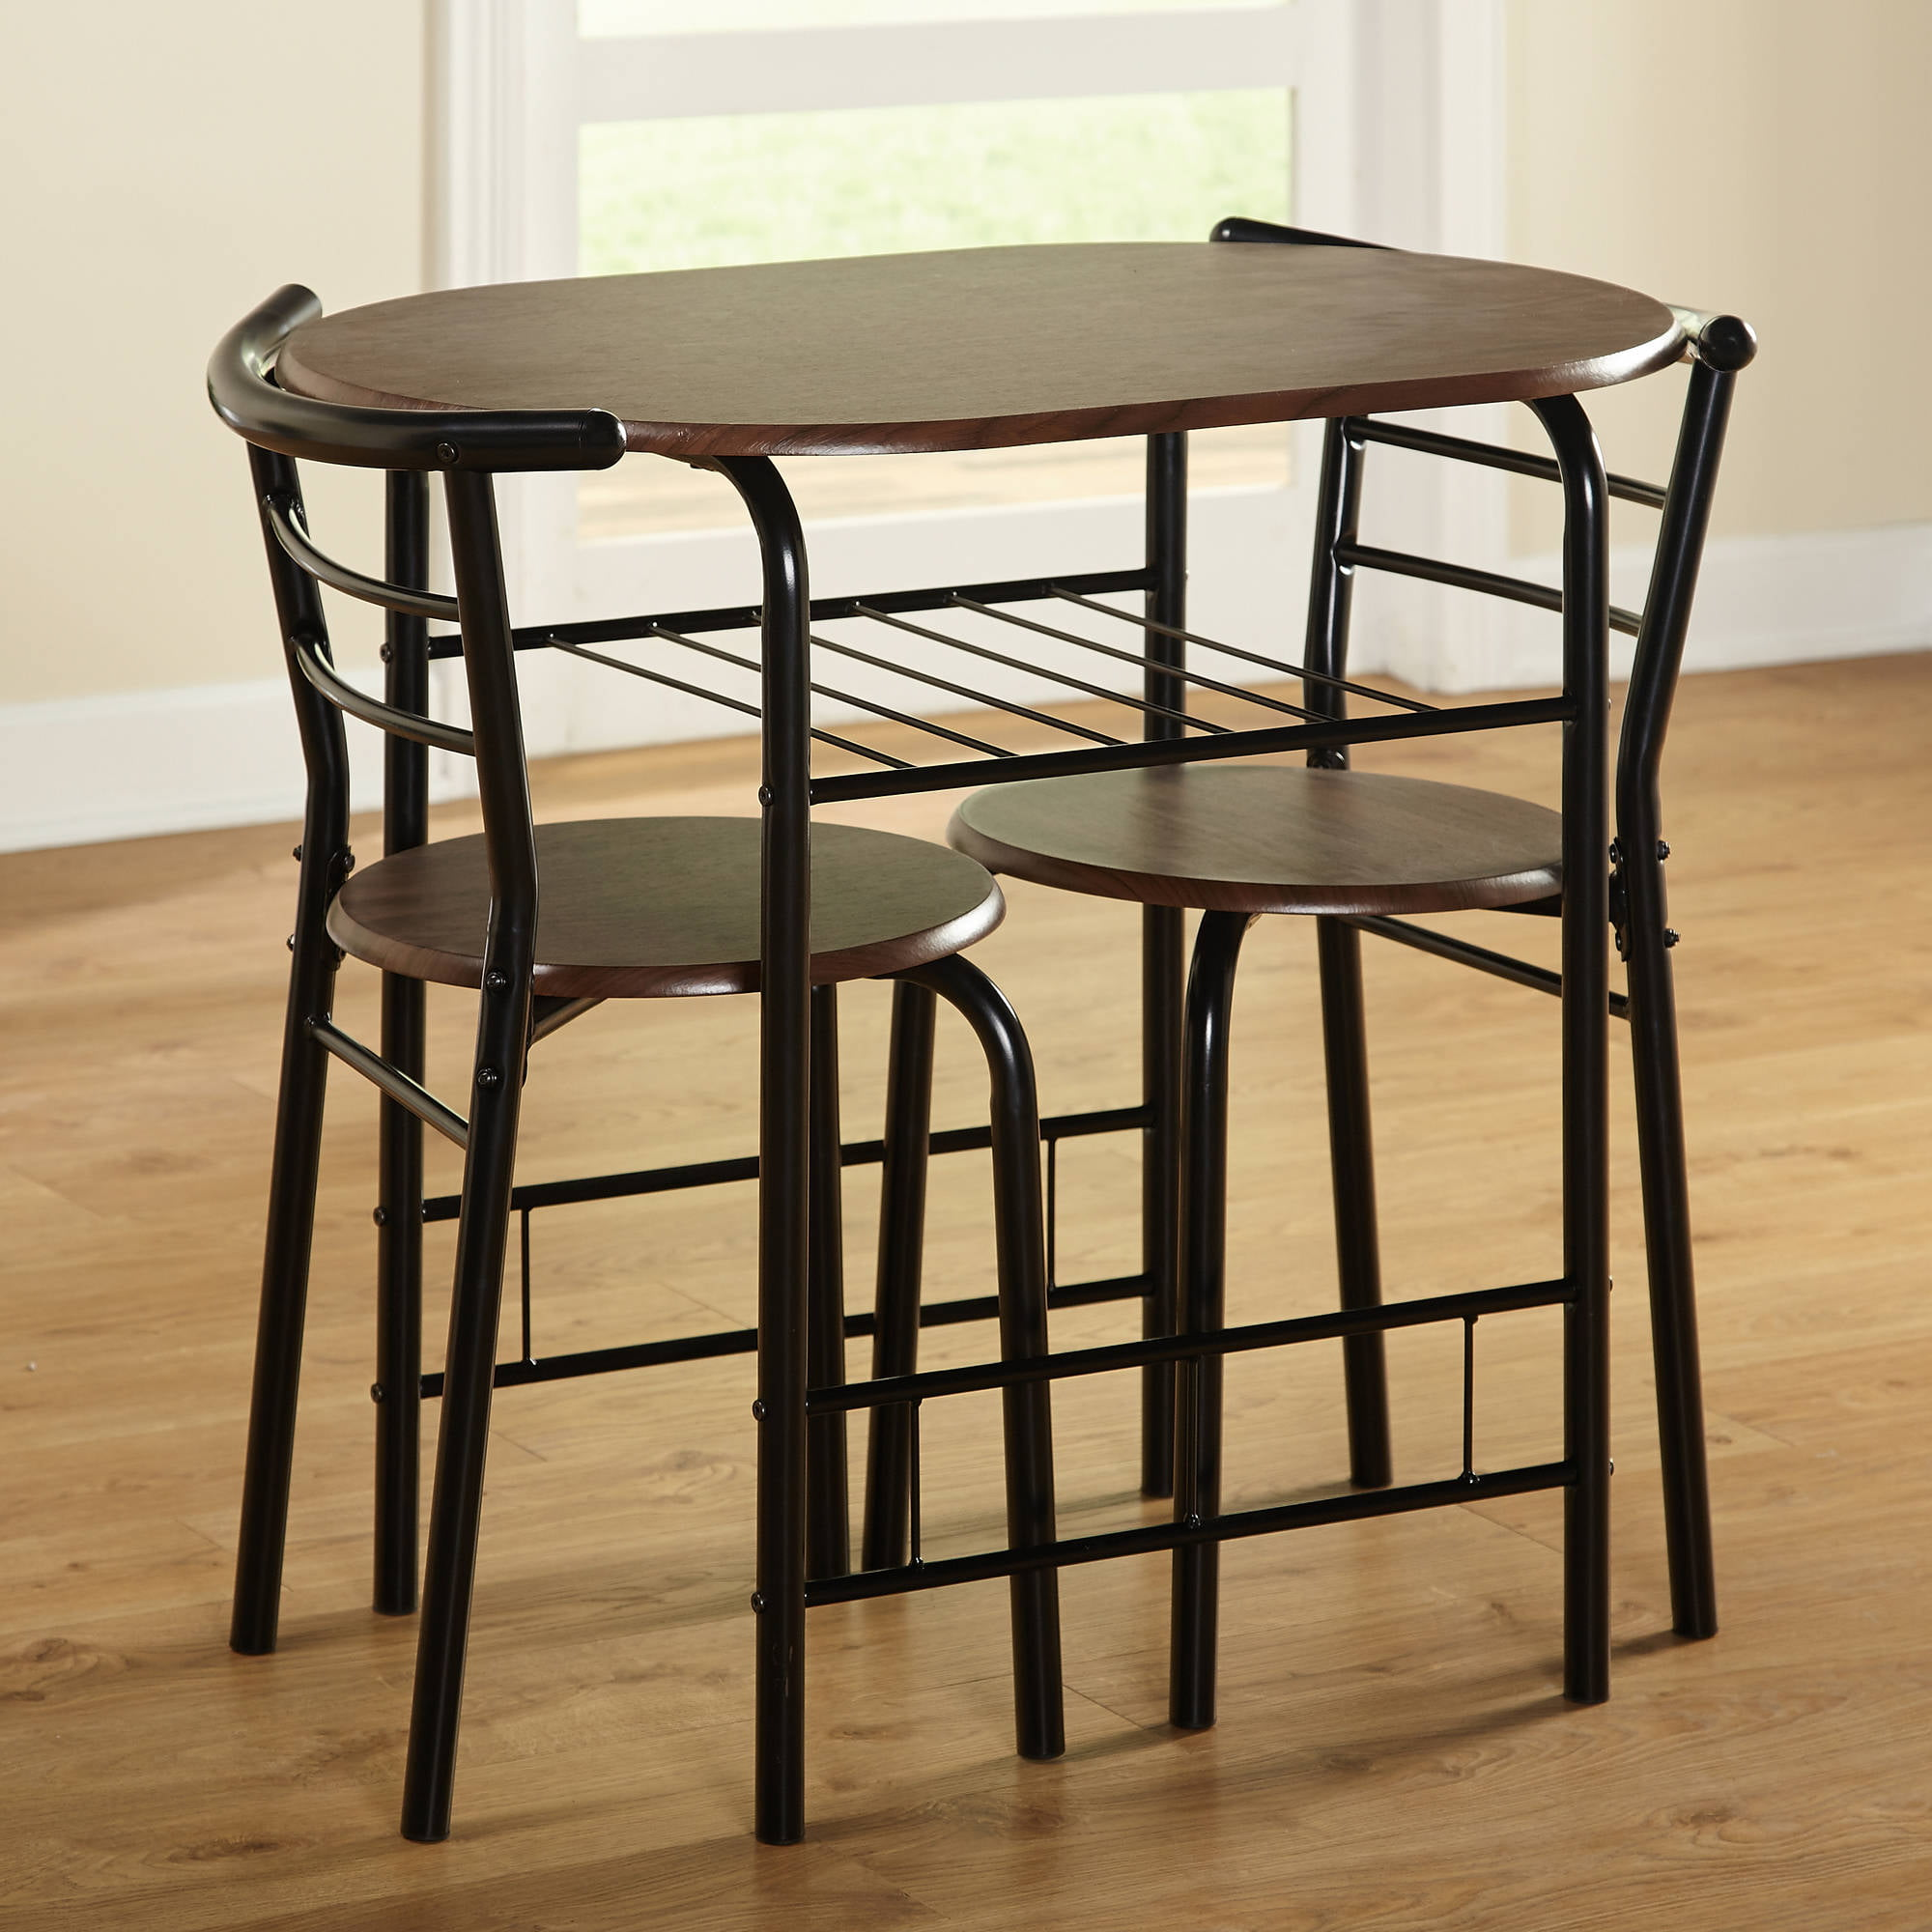 Indoor Kitchen Bistro Dining Set Espresso Black Table Chairs Furniture